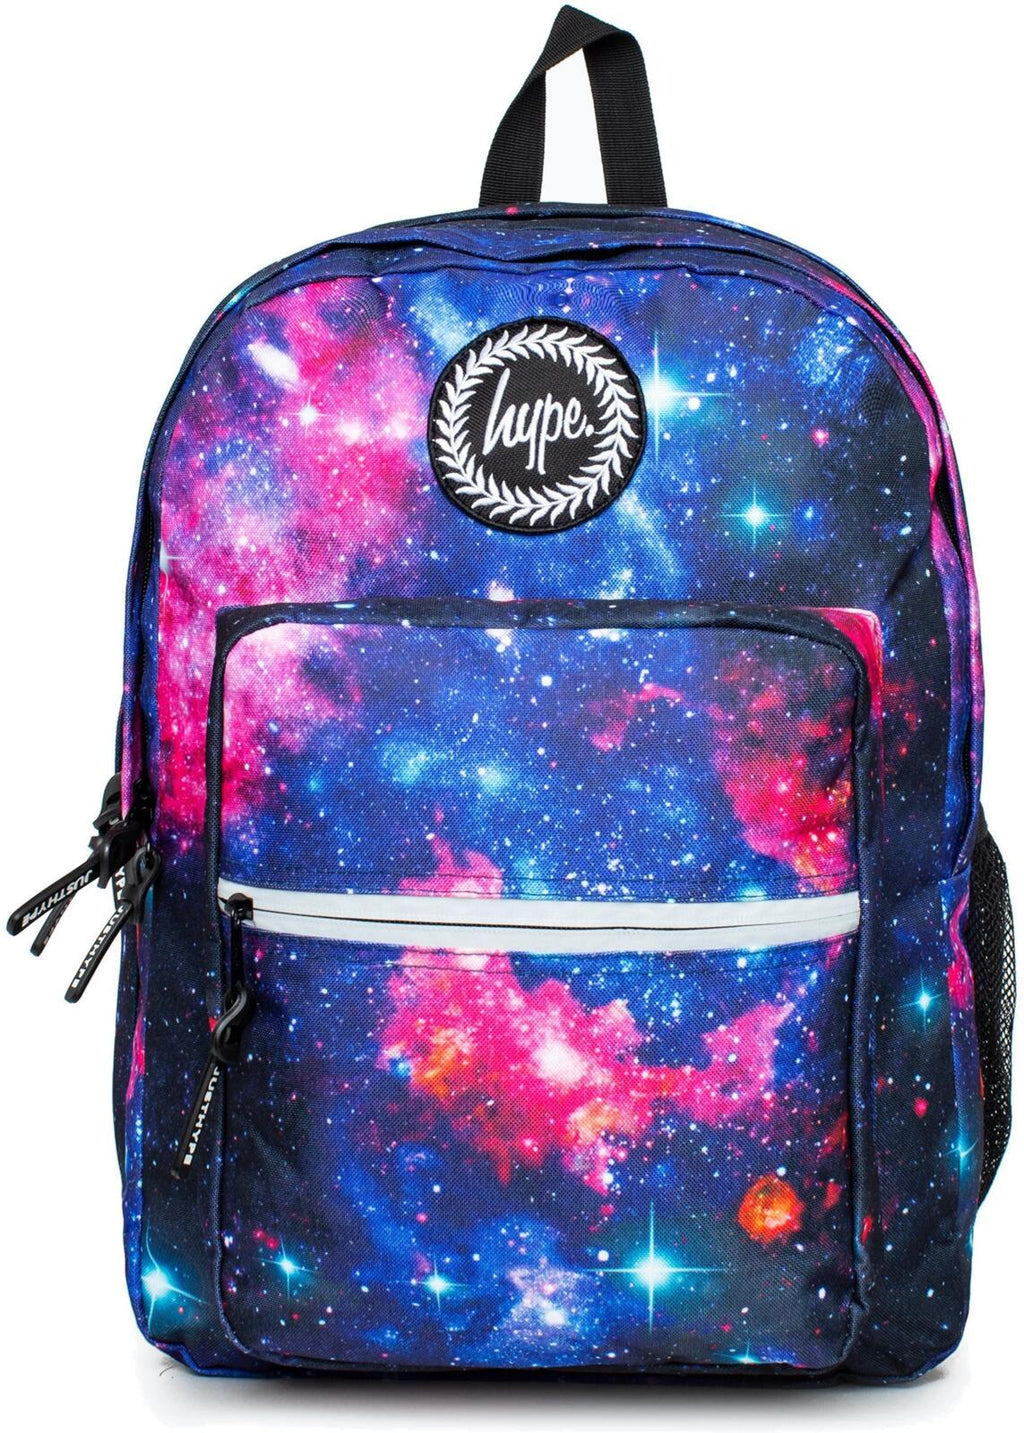 Hype Utility Space Backpack Bag Multi